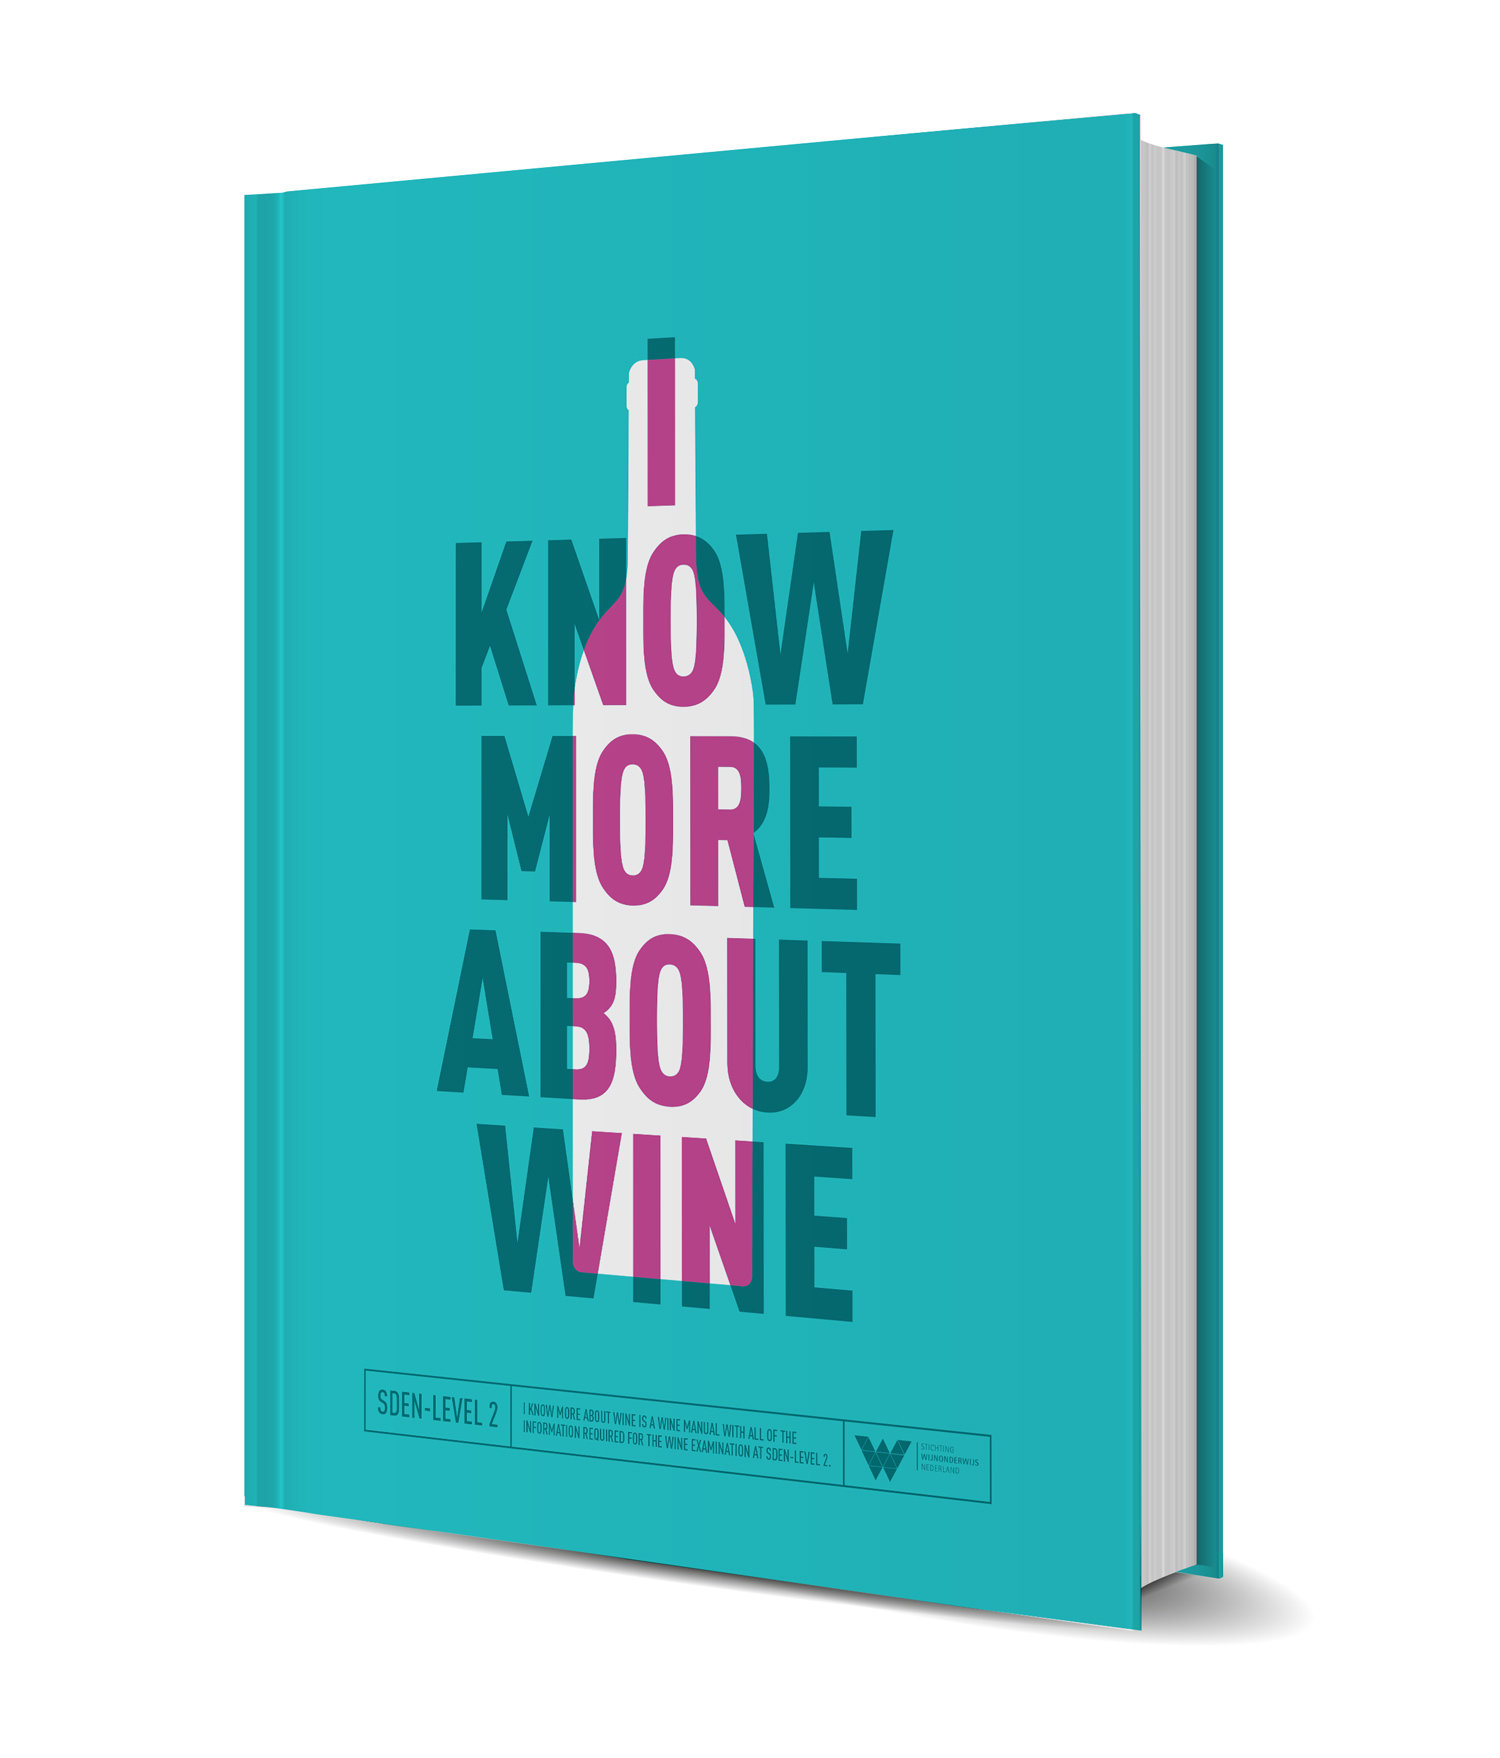 English Book: I know more about wine 0009